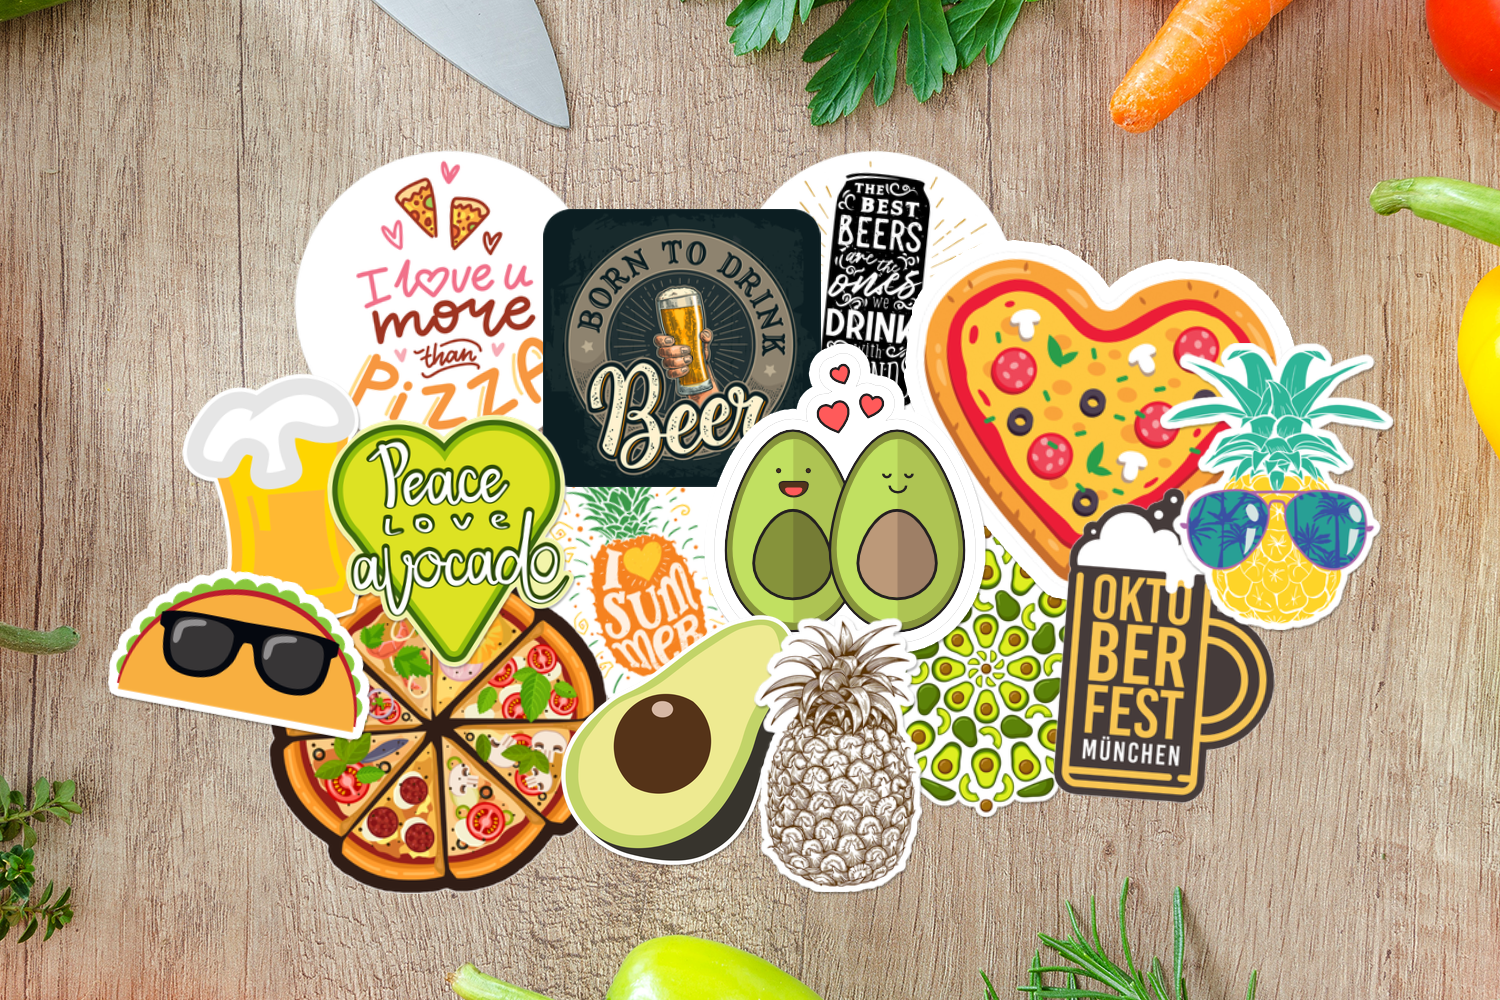 Food and Beverage Stickers on table.